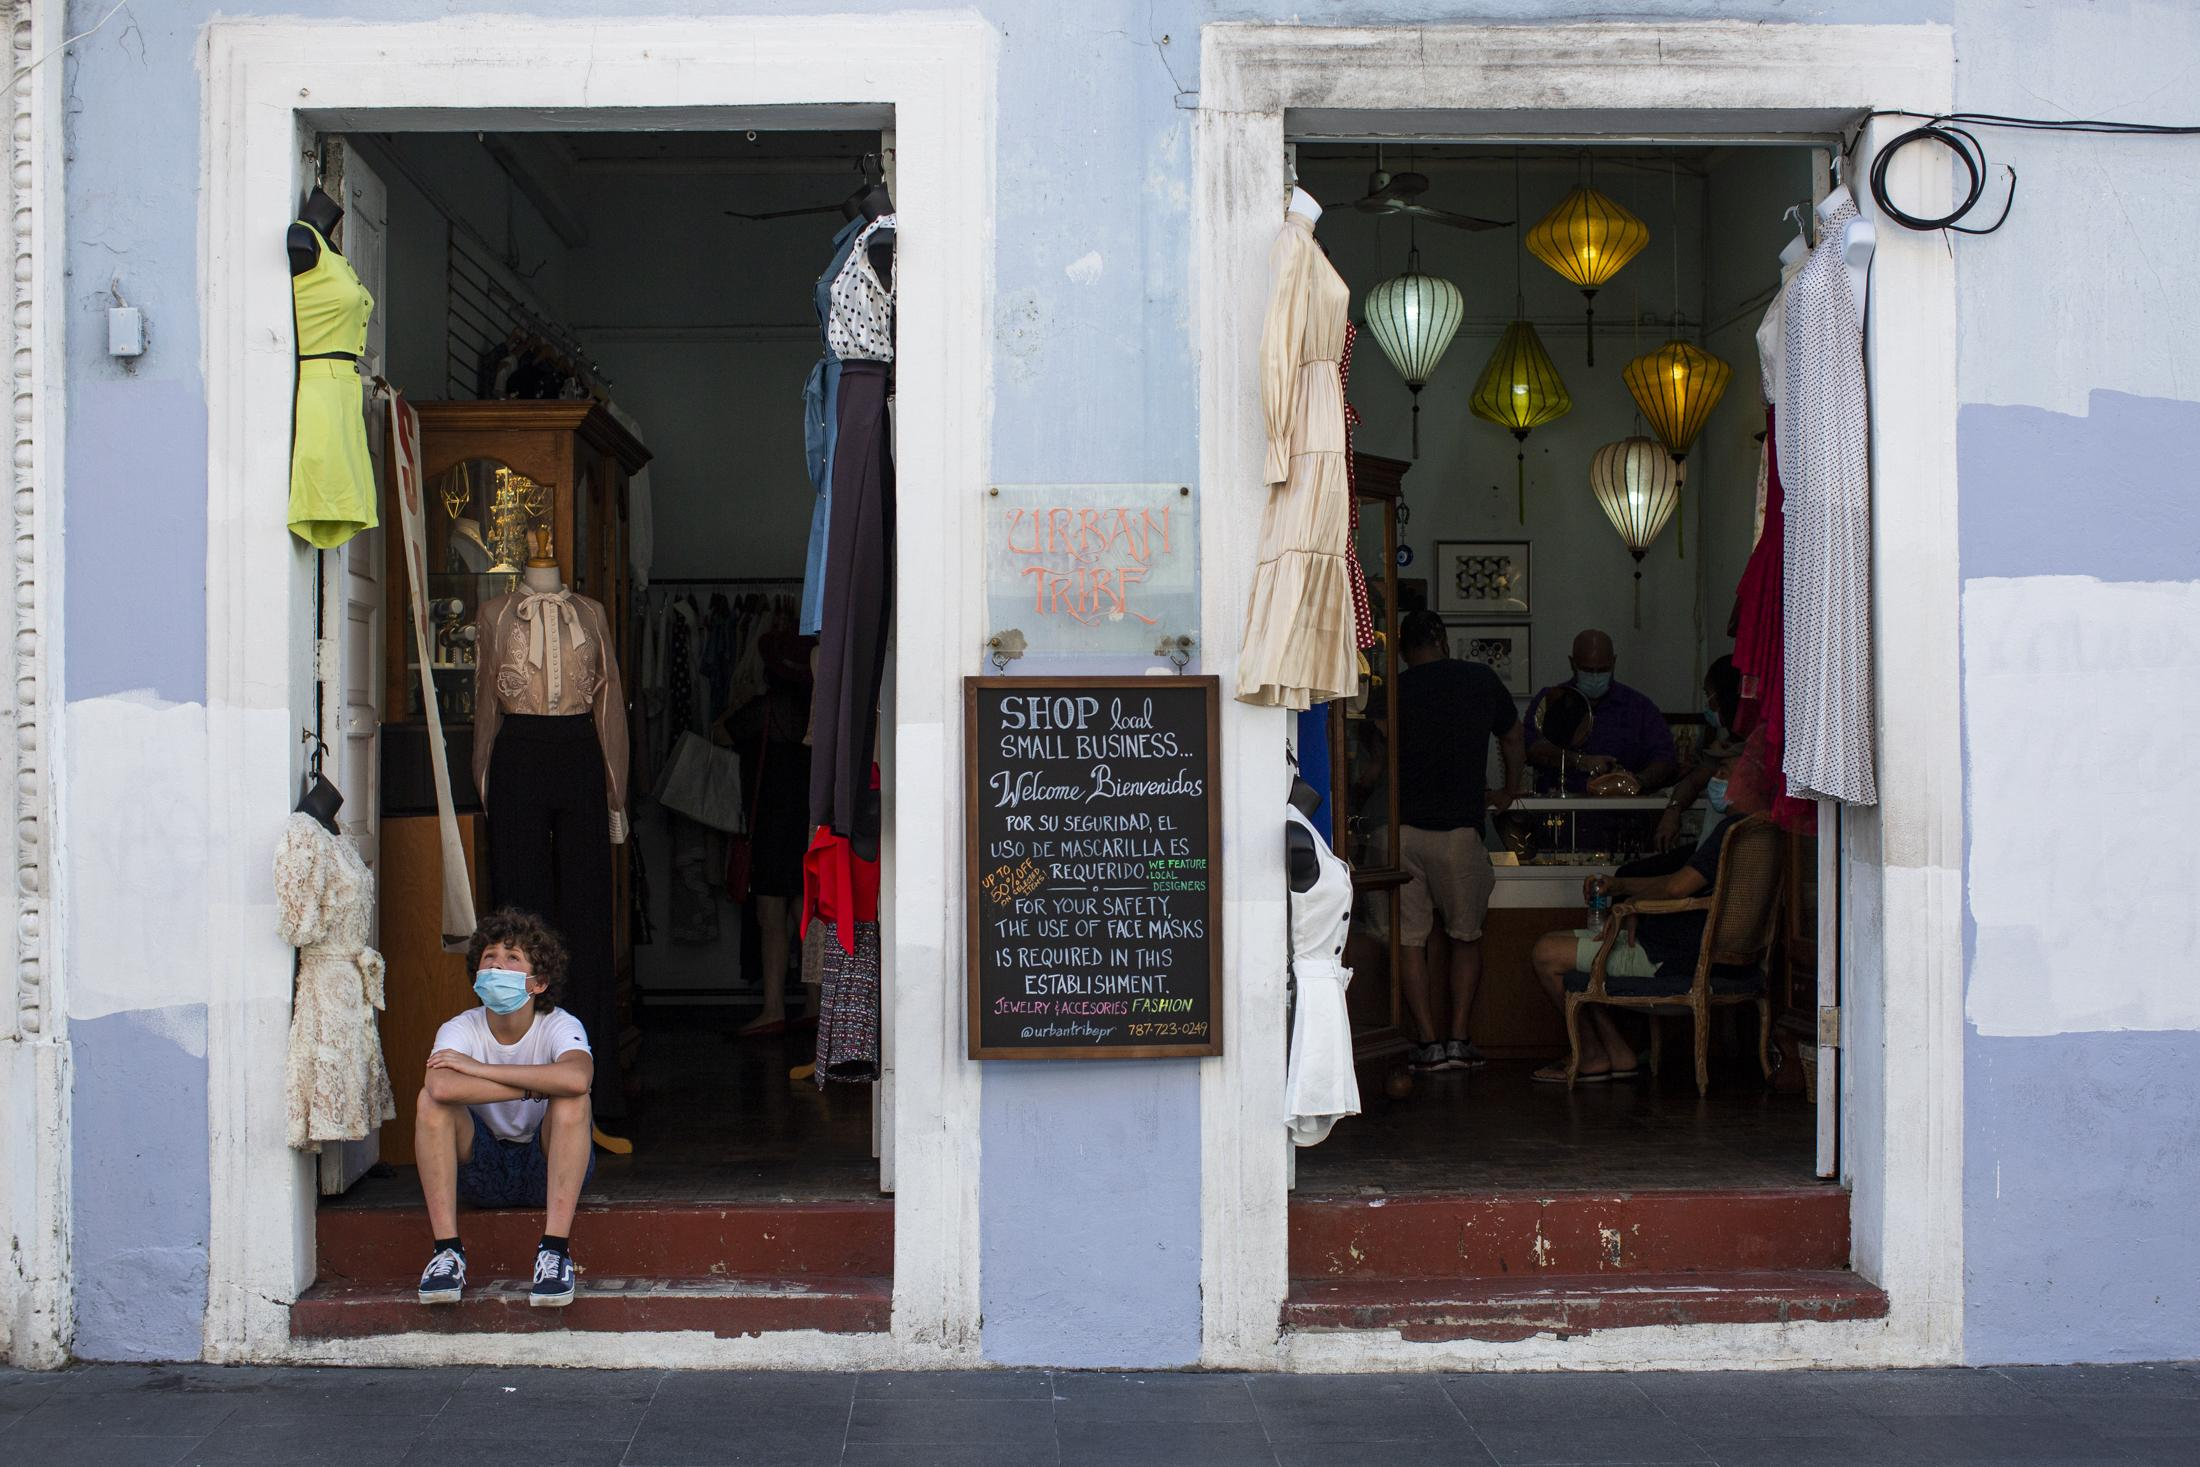 NYTVIRUS - A boy sits at the entrance of a store in Old San Juan, San Juan, P.R., on August 13, 2020. People in the Old San Juan community reported issues with tourists not wearing masks while in the area after the island opened itself for tourism. Almost 300 people have died from the Covid-19 pandemic on the island. (Erika P. Rodriguez for the New York Times)